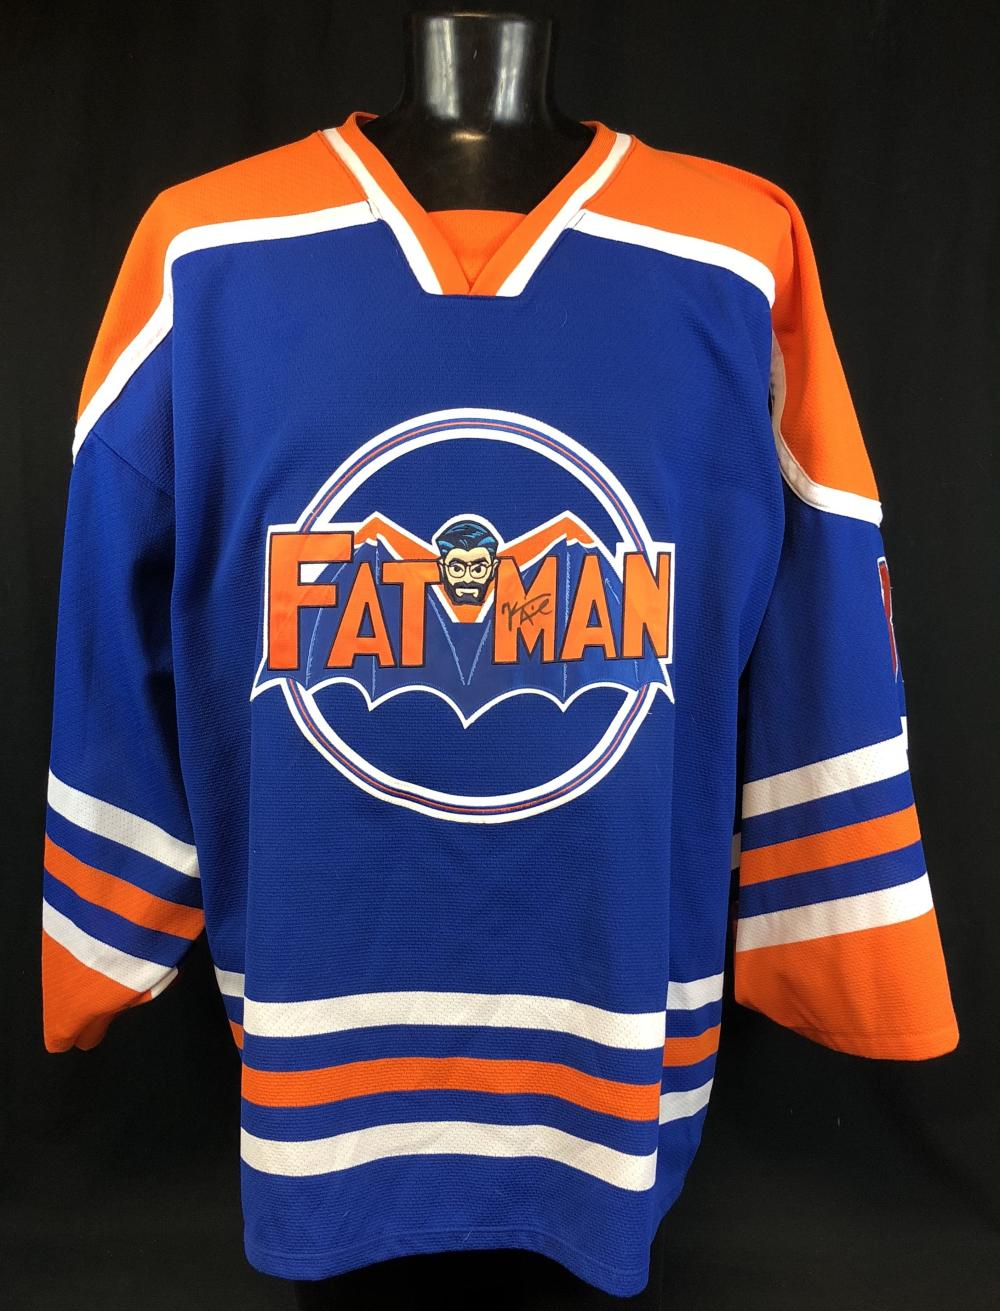 """Kevin Smith Worn and Signed """"Fatman"""" Hockey Jersey From His Closet"""